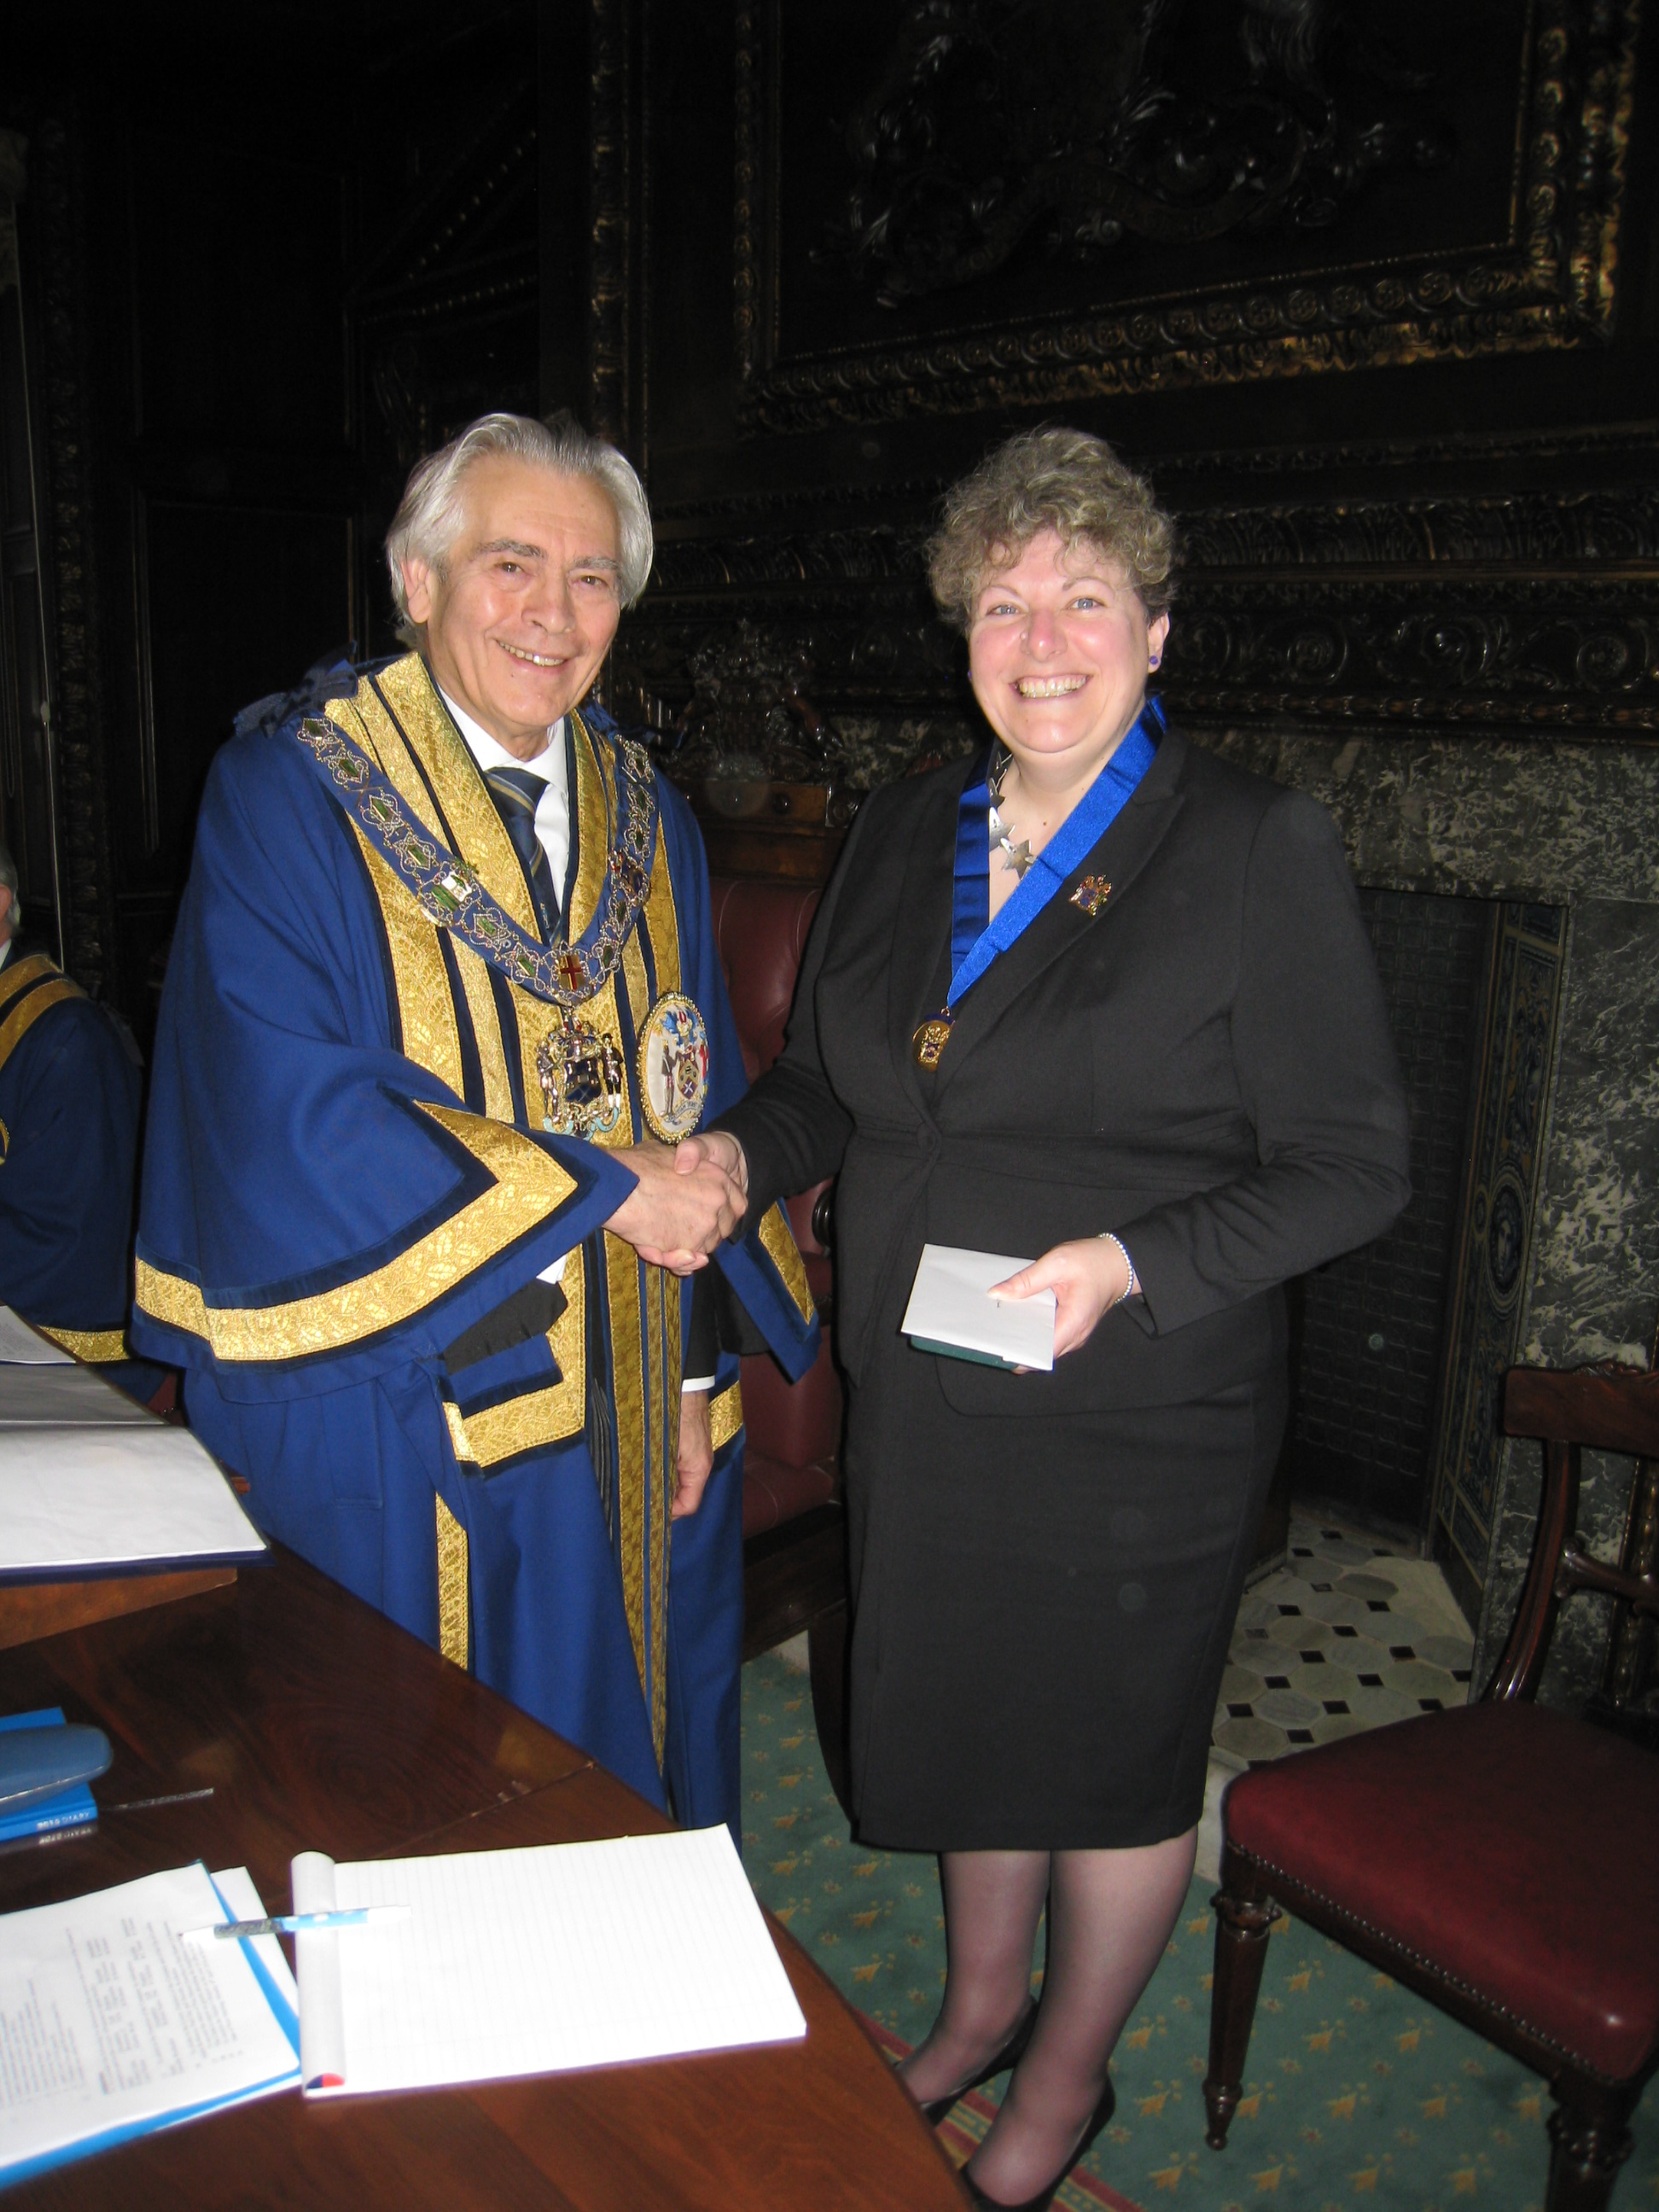 New Court Assistant Anneliese Edgcumbe